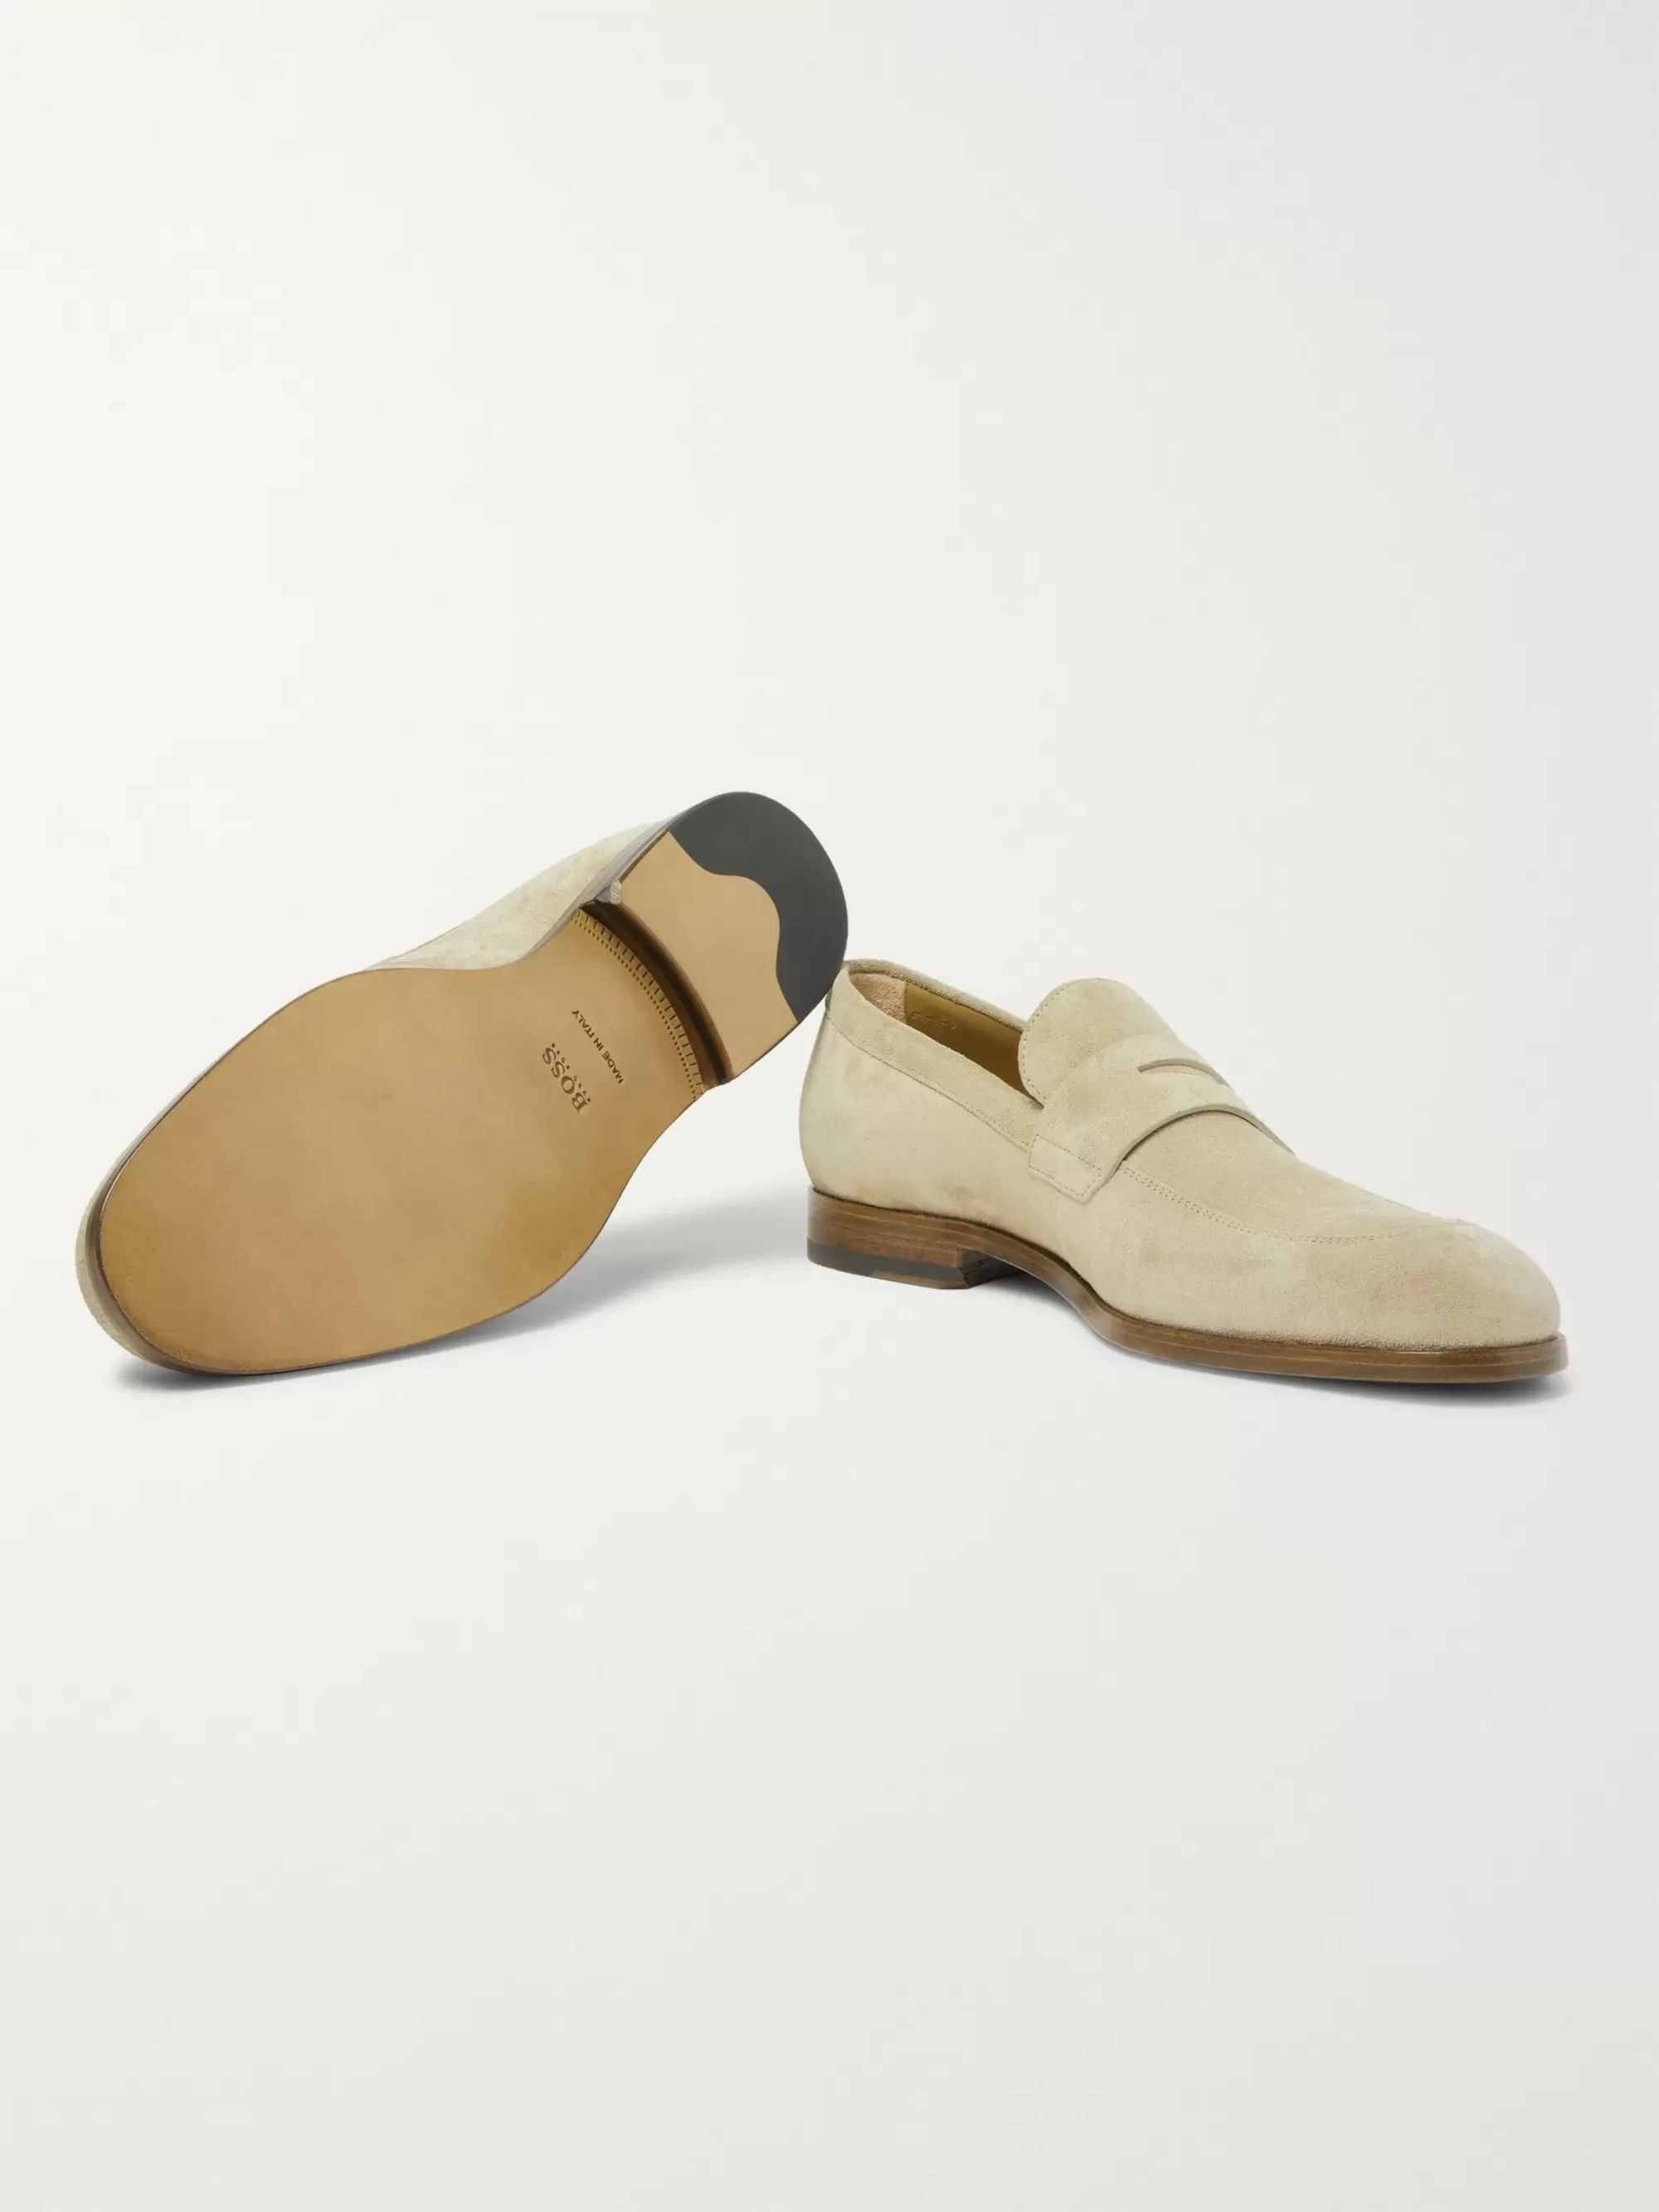 Hugo Boss Brighton Suede Penny Loafers